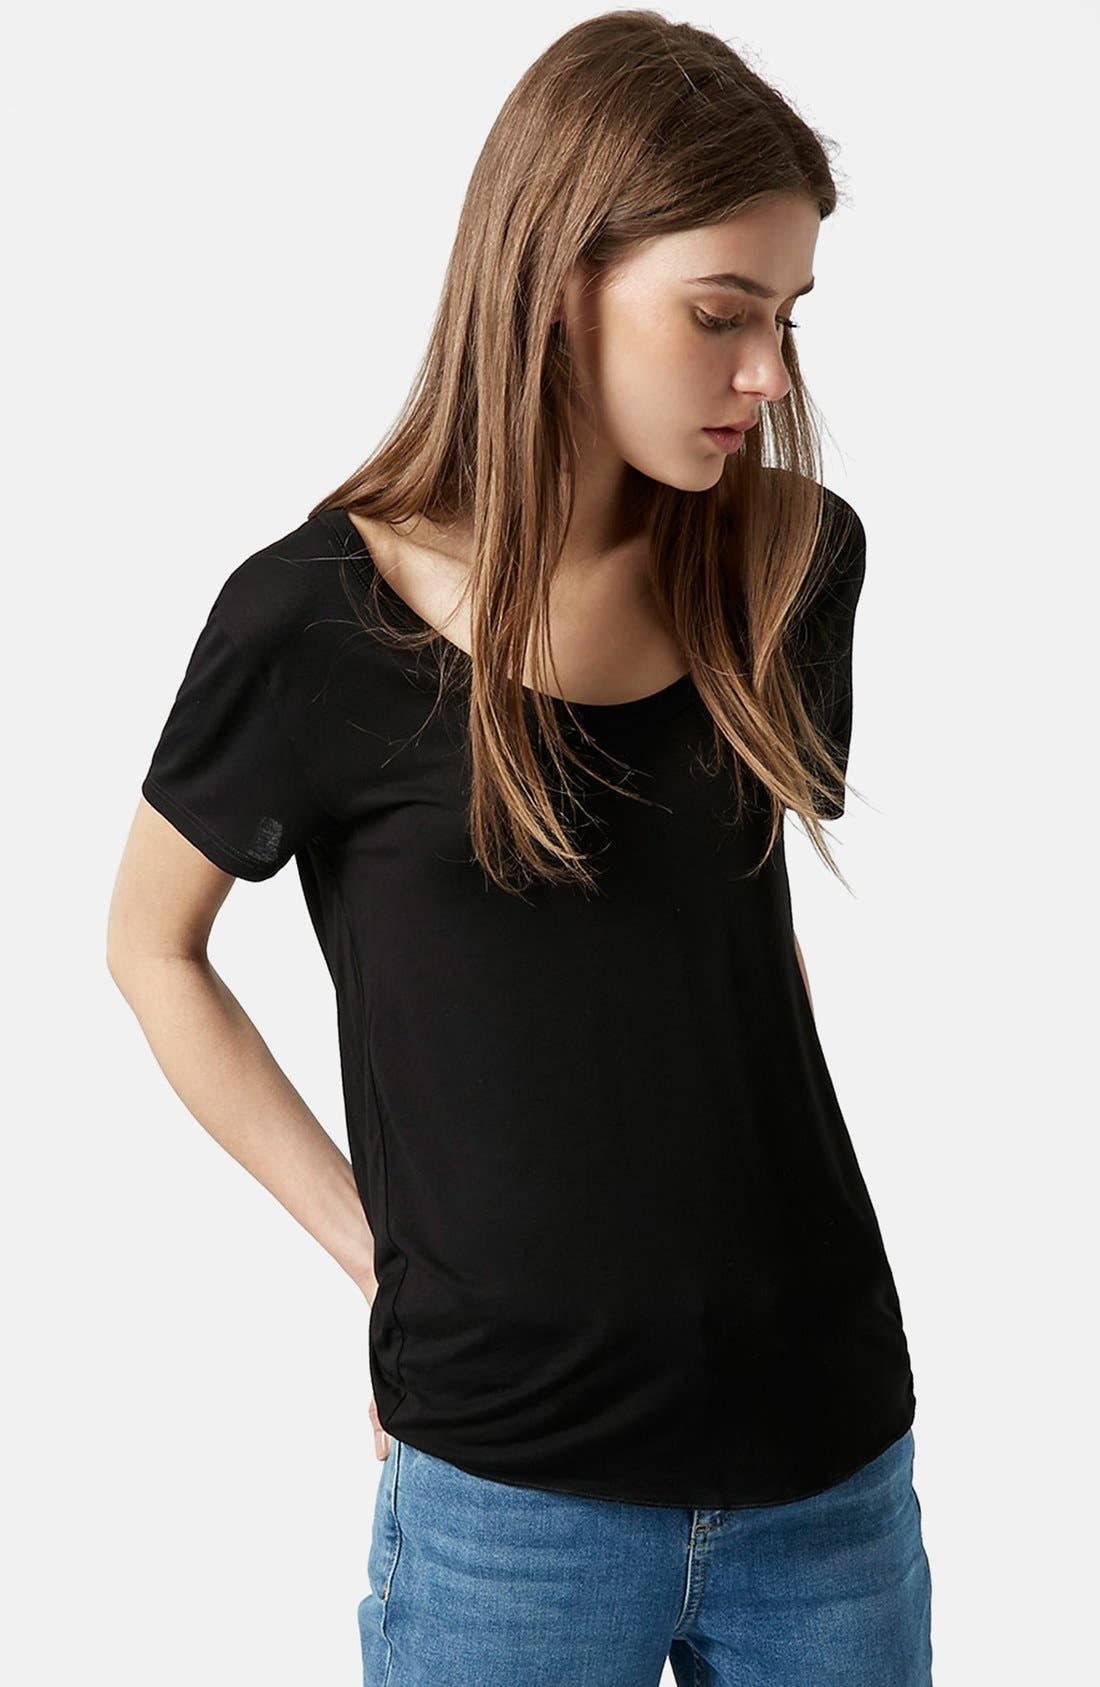 TOPSHOP, Short Sleeve V-Neck Tee, Main thumbnail 1, color, 001